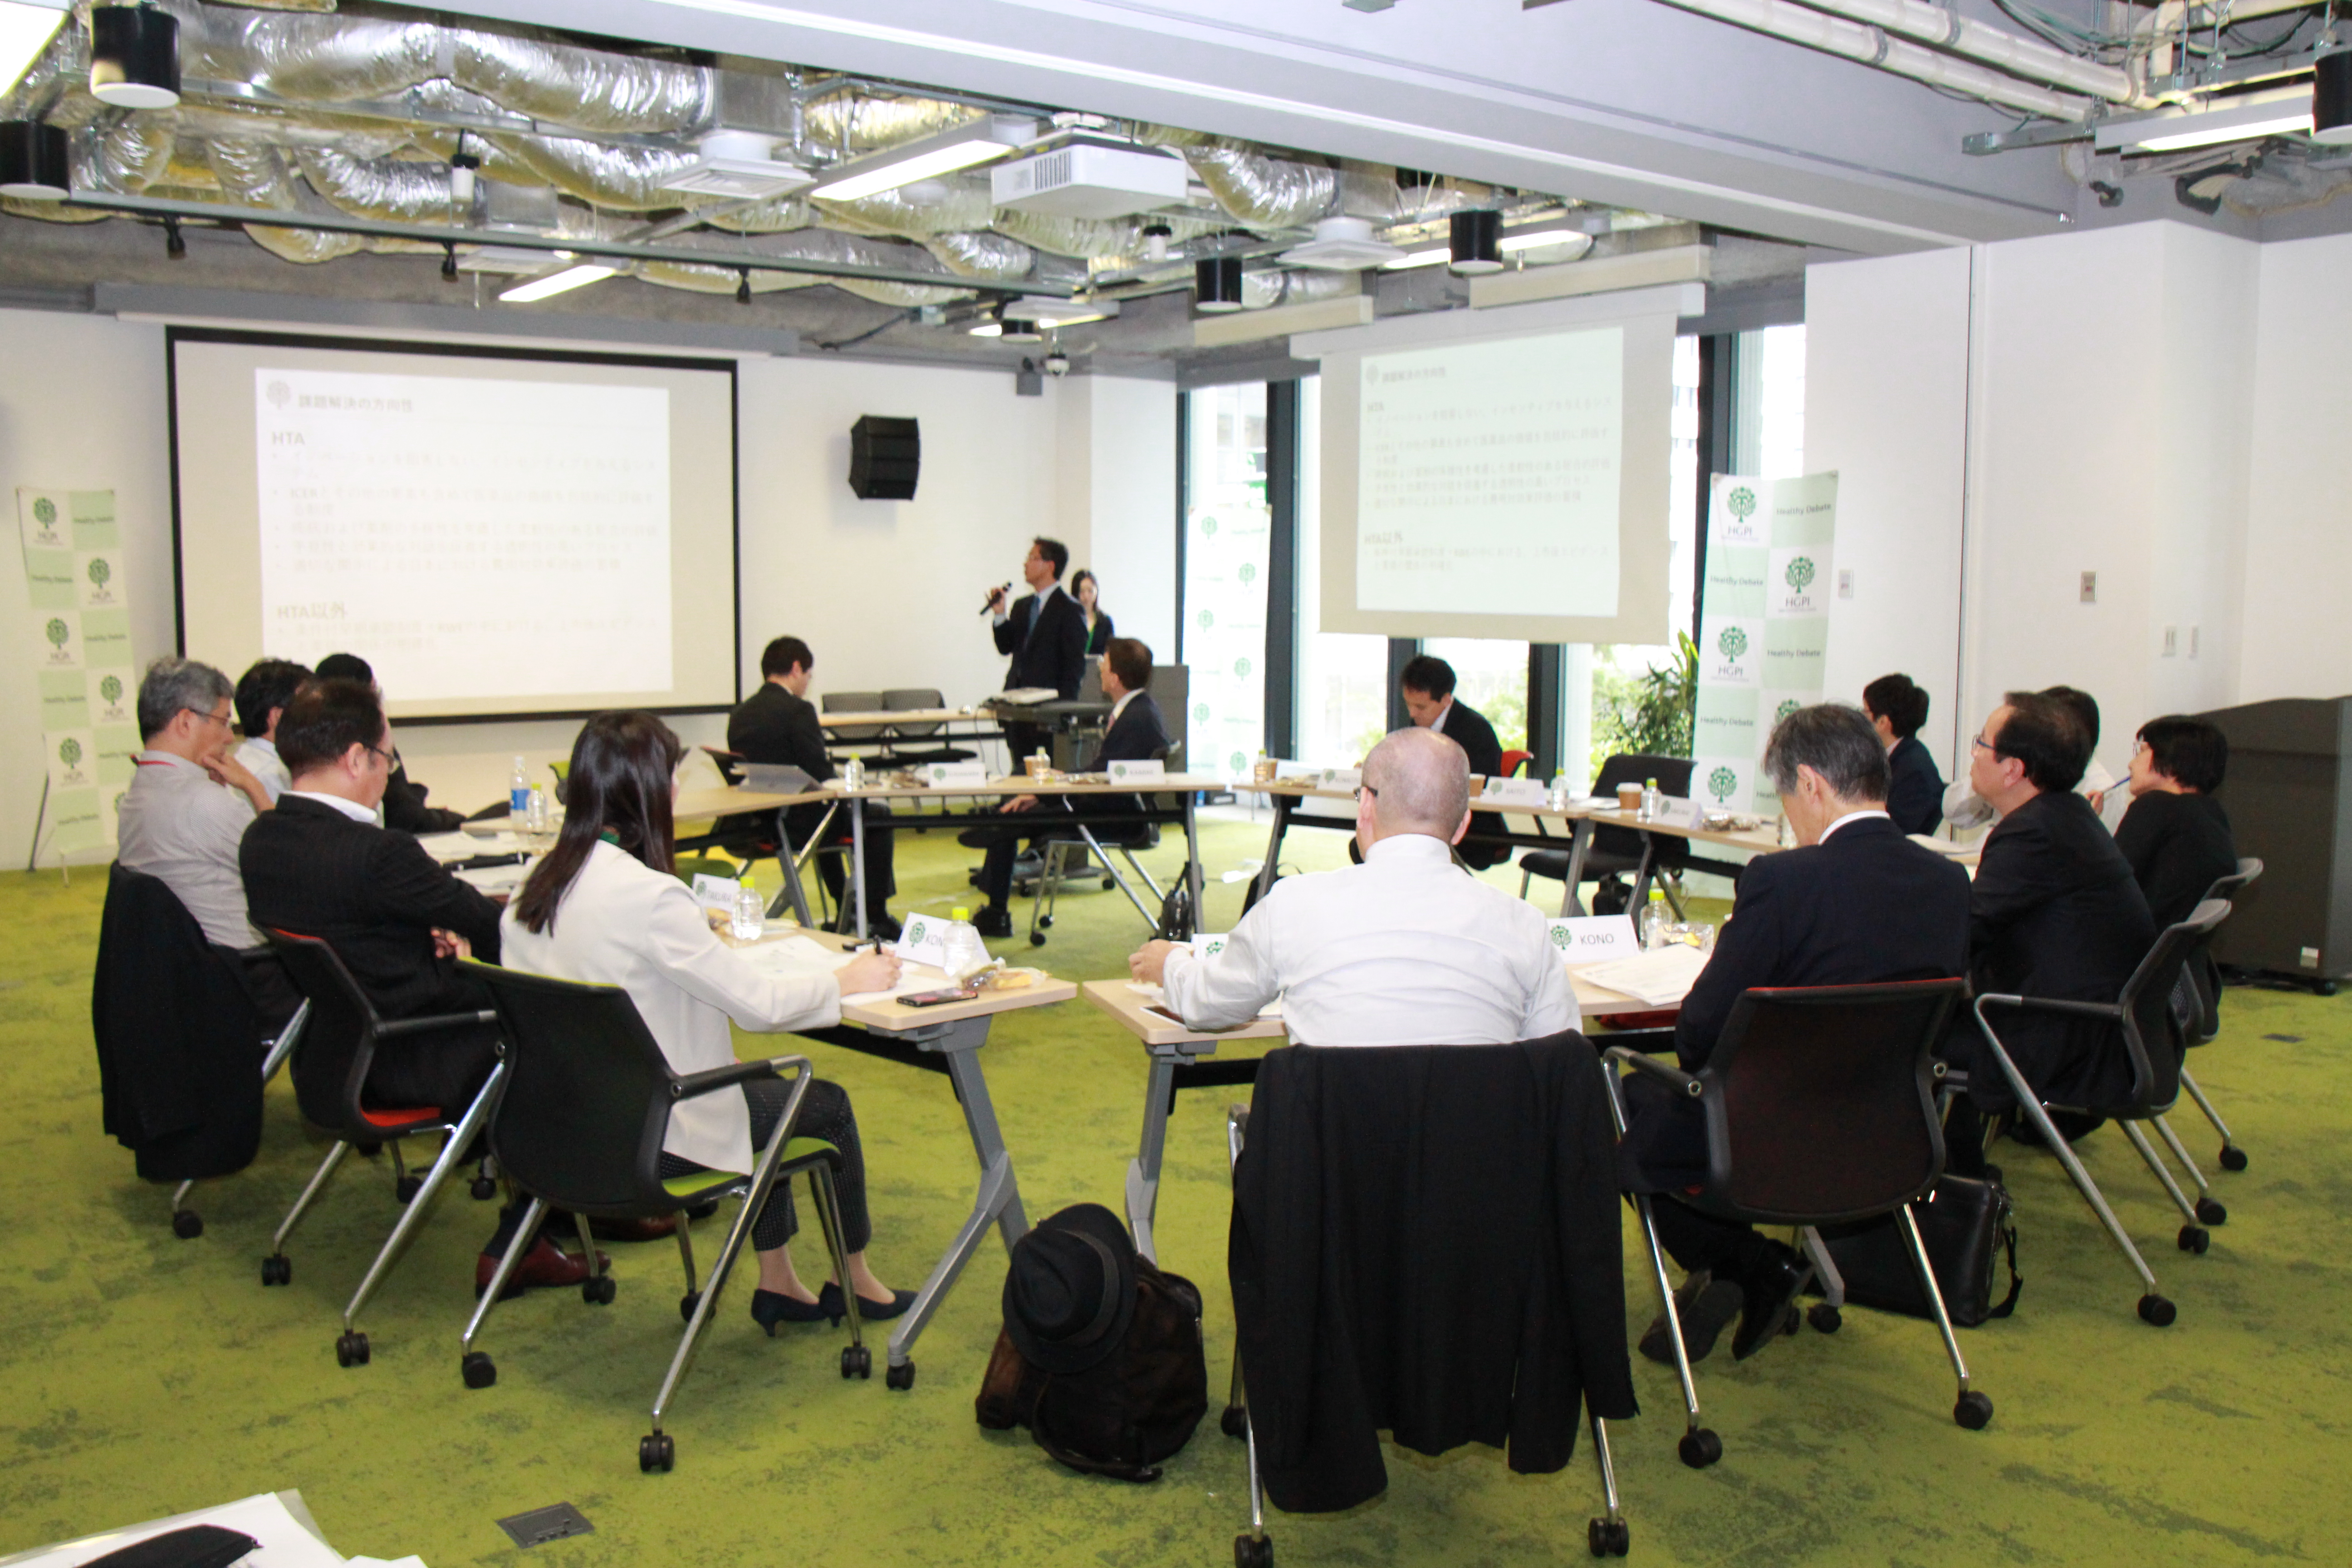 [Event Report] Second Forum: The Introduction of Cost-Effectiveness Assessment, Its Impact, and Compatibility with Other Systems (September 13, 2018)